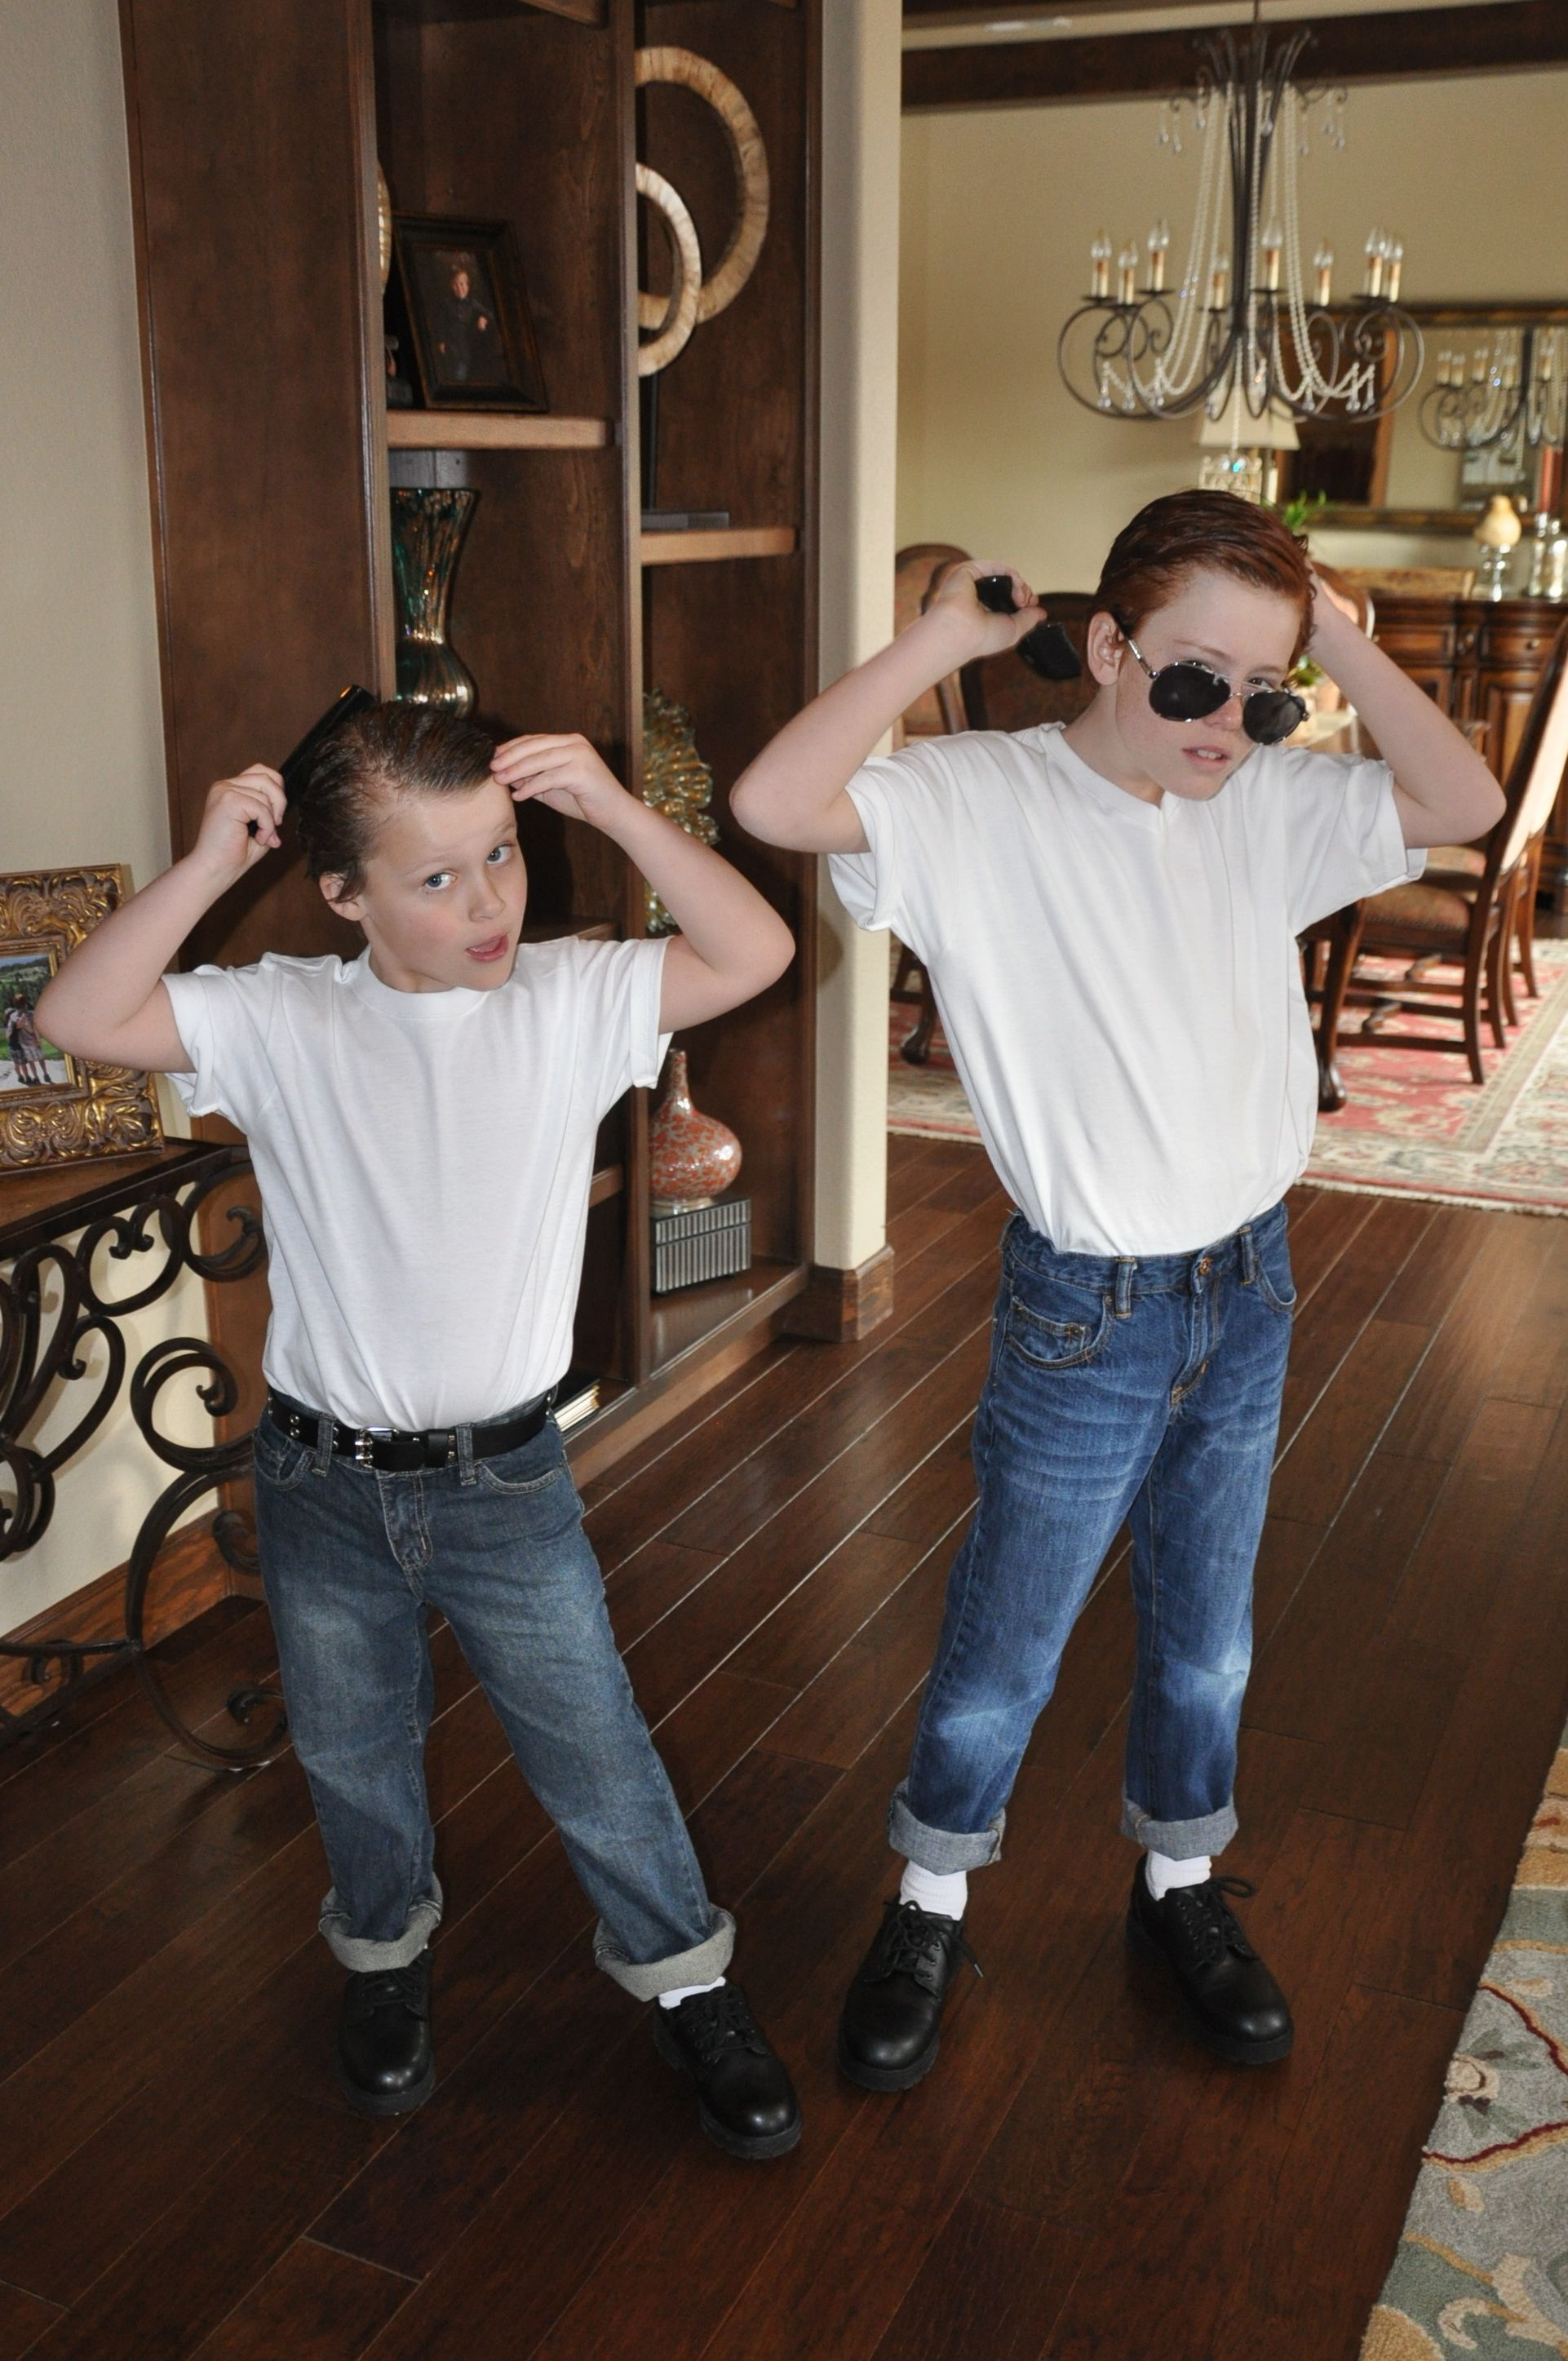 430ceea40533 Simple Sock Hop attire - it's all in the attitude! | Custom Costumes ...